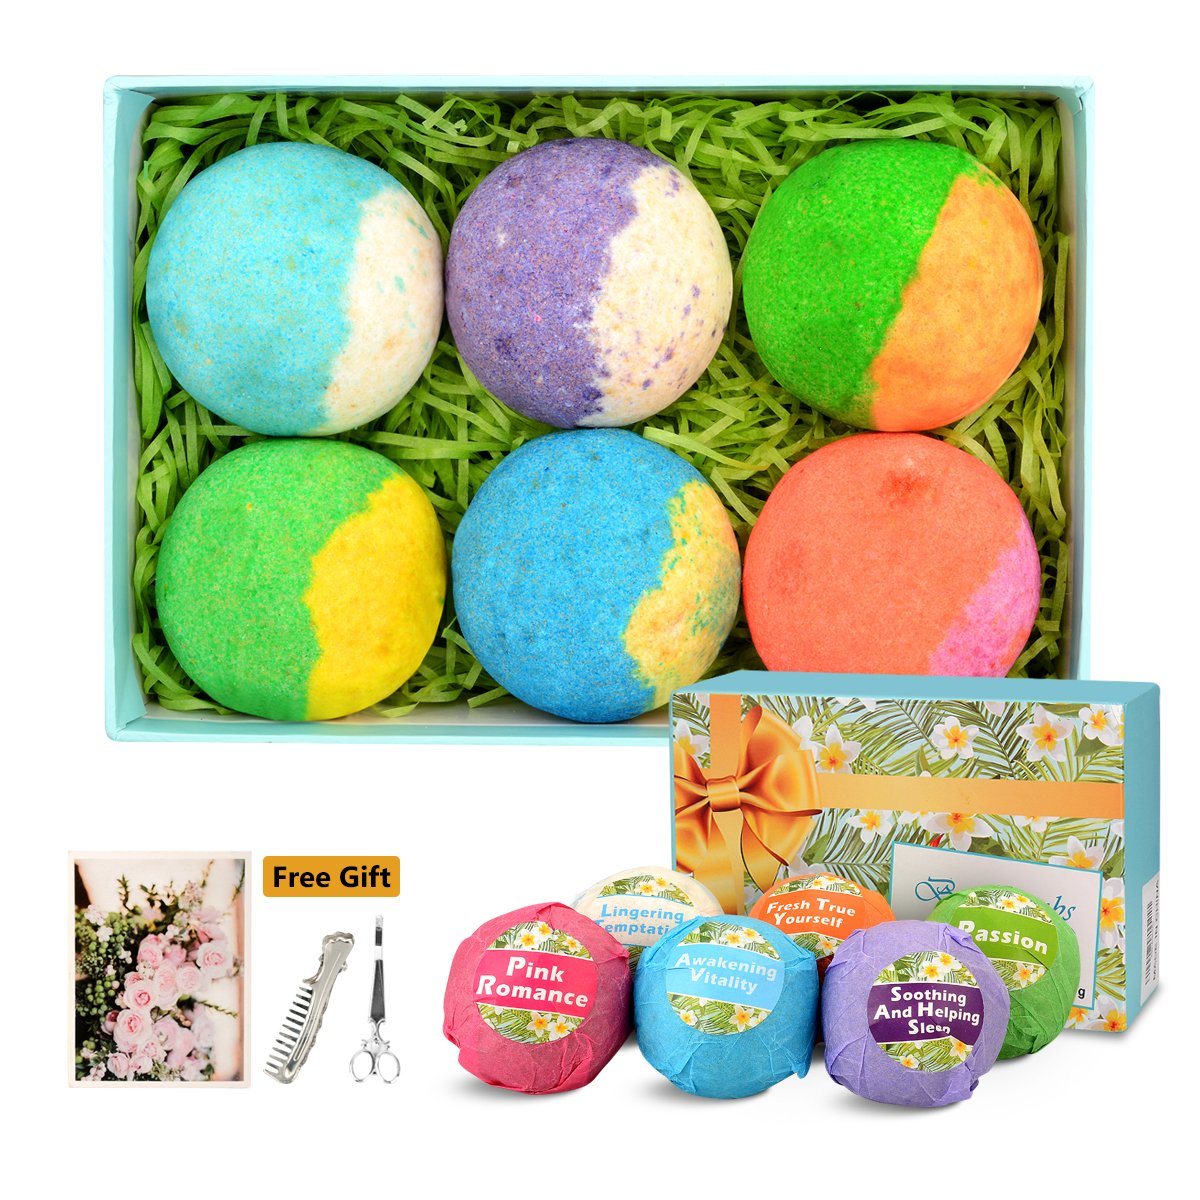 Large Organic Bath Bomb Set for Women Men Teenager Babies Him and Her, Ultra Fizzes and Bubbles , Stress Reliever Lush Spa(6X3.8ounce) organic bath bombs